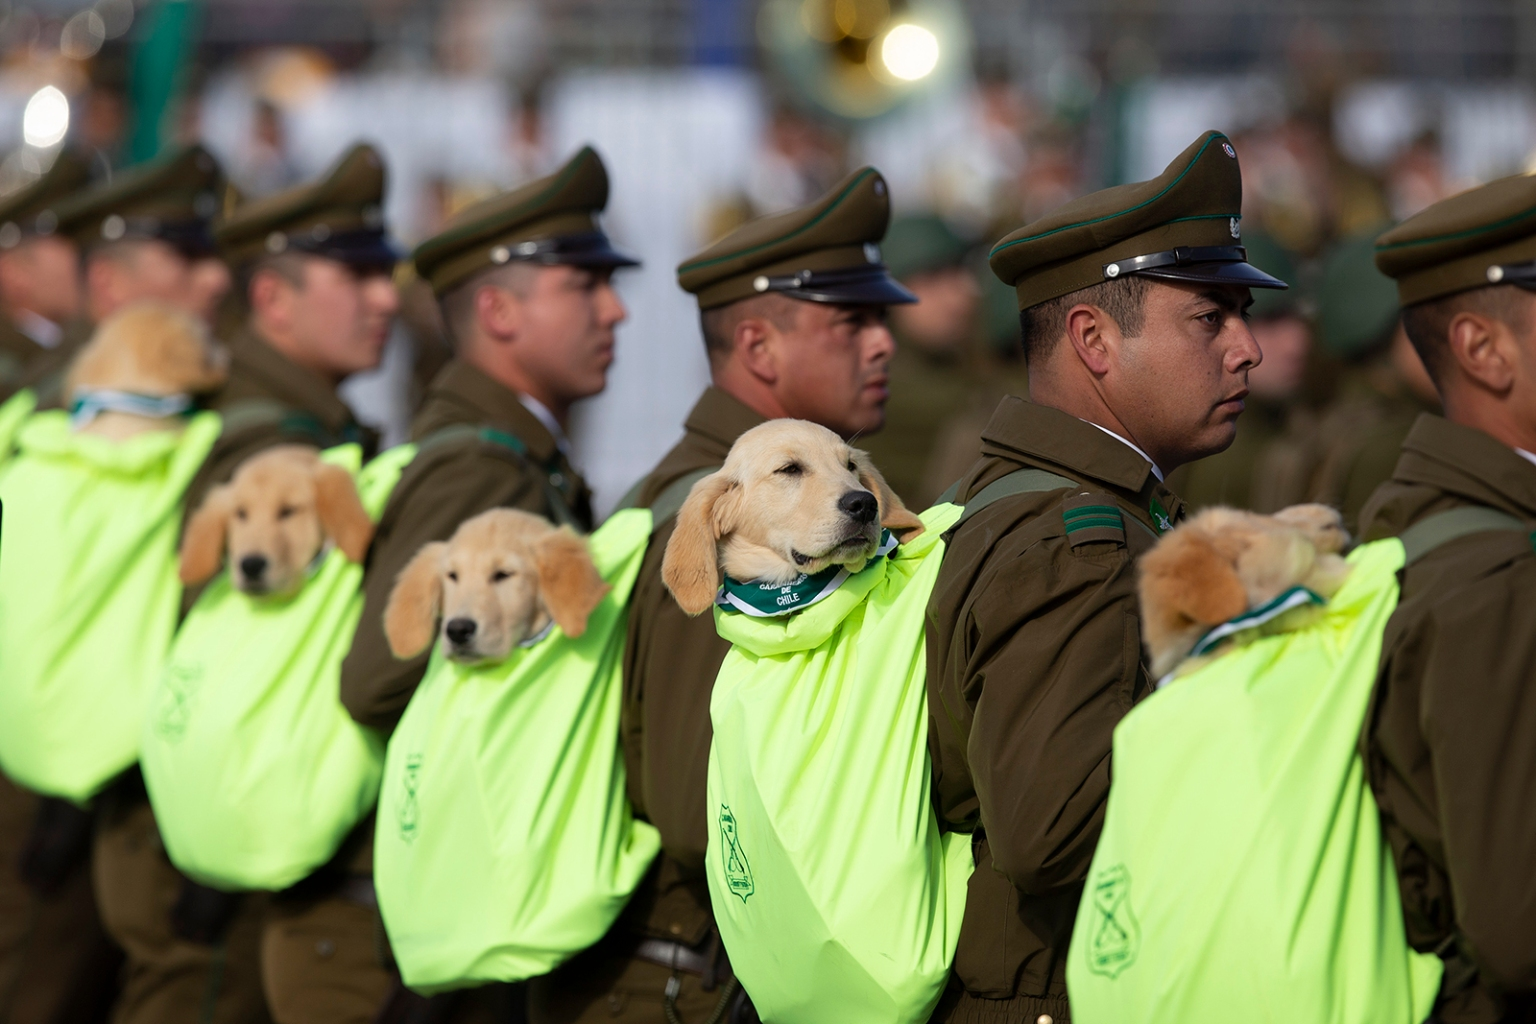 Carabineros police officers march with their sniffer dogs during a military parade in Santiago marking the 209th anniversary of Chile's independence on Sept. 19. CLAUDIO REYES/AFP/Getty Images